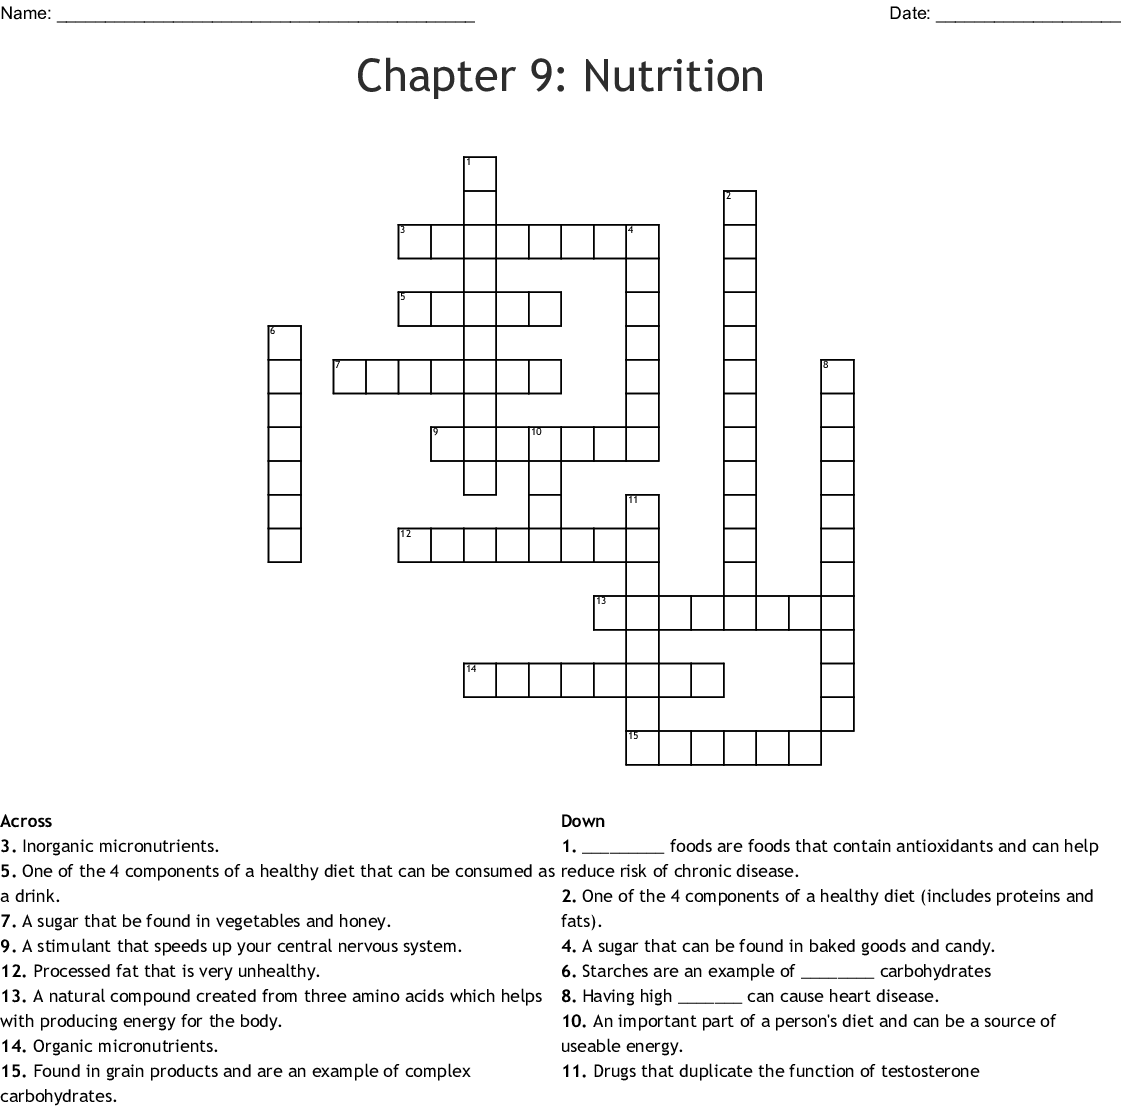 Chapter 9 Nutrition Crossword